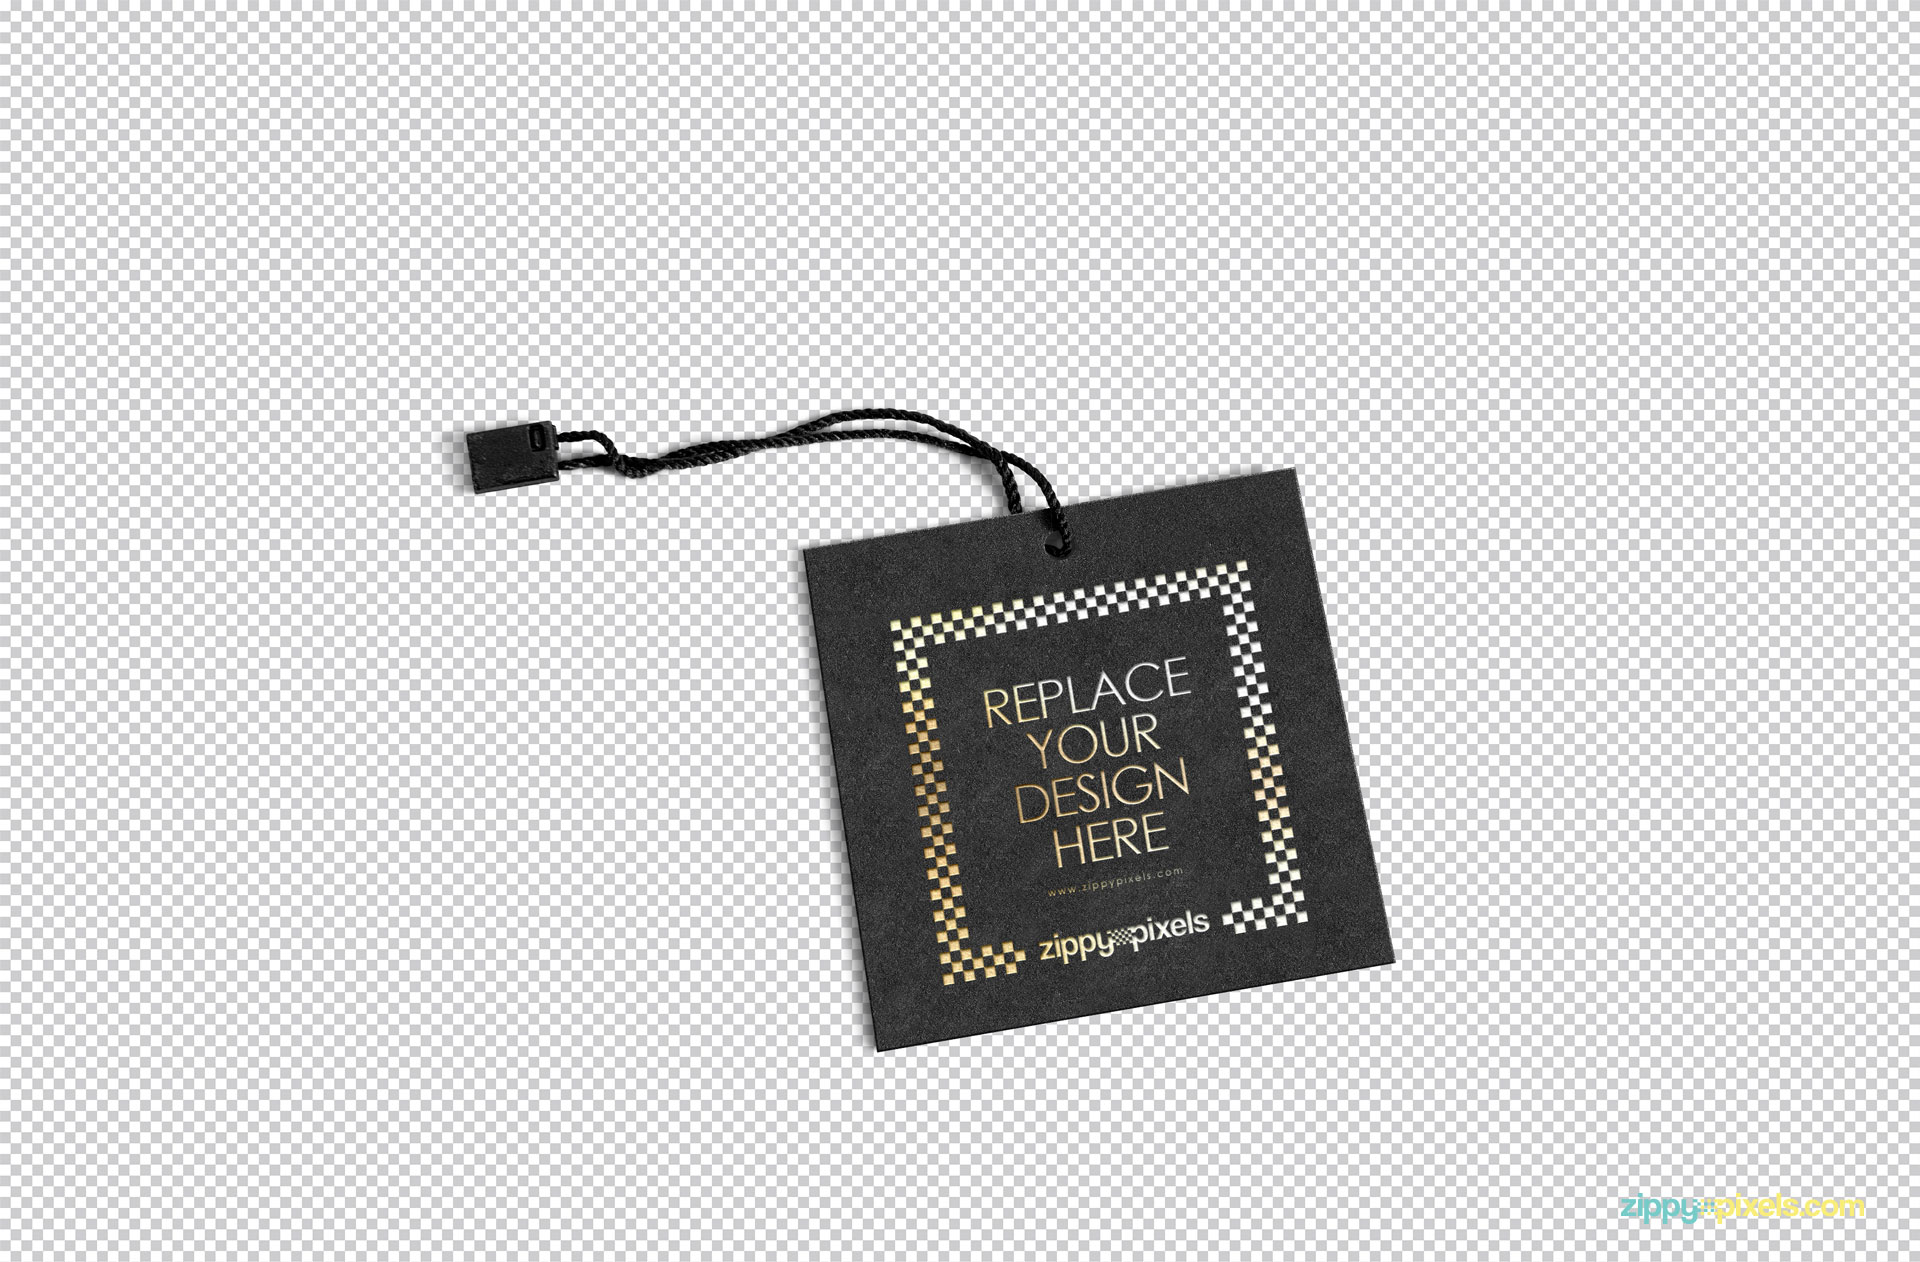 Edit the design of label tag mockup according to your liking.